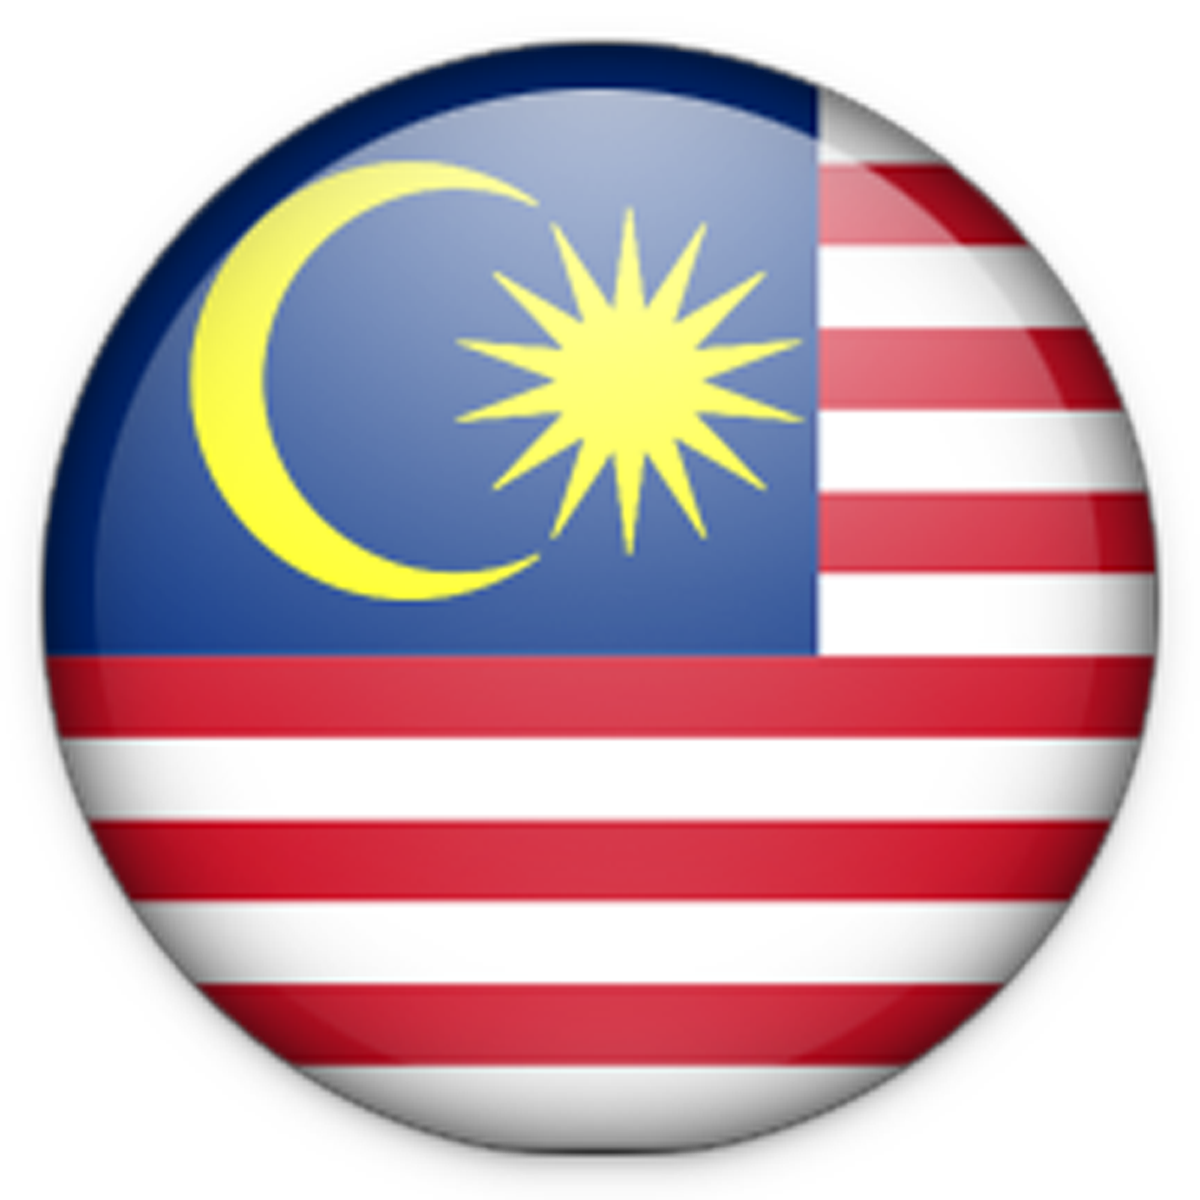 wallpapers flag of malaysia png 41826 free icons and free vector baseball ball vector baseball ball